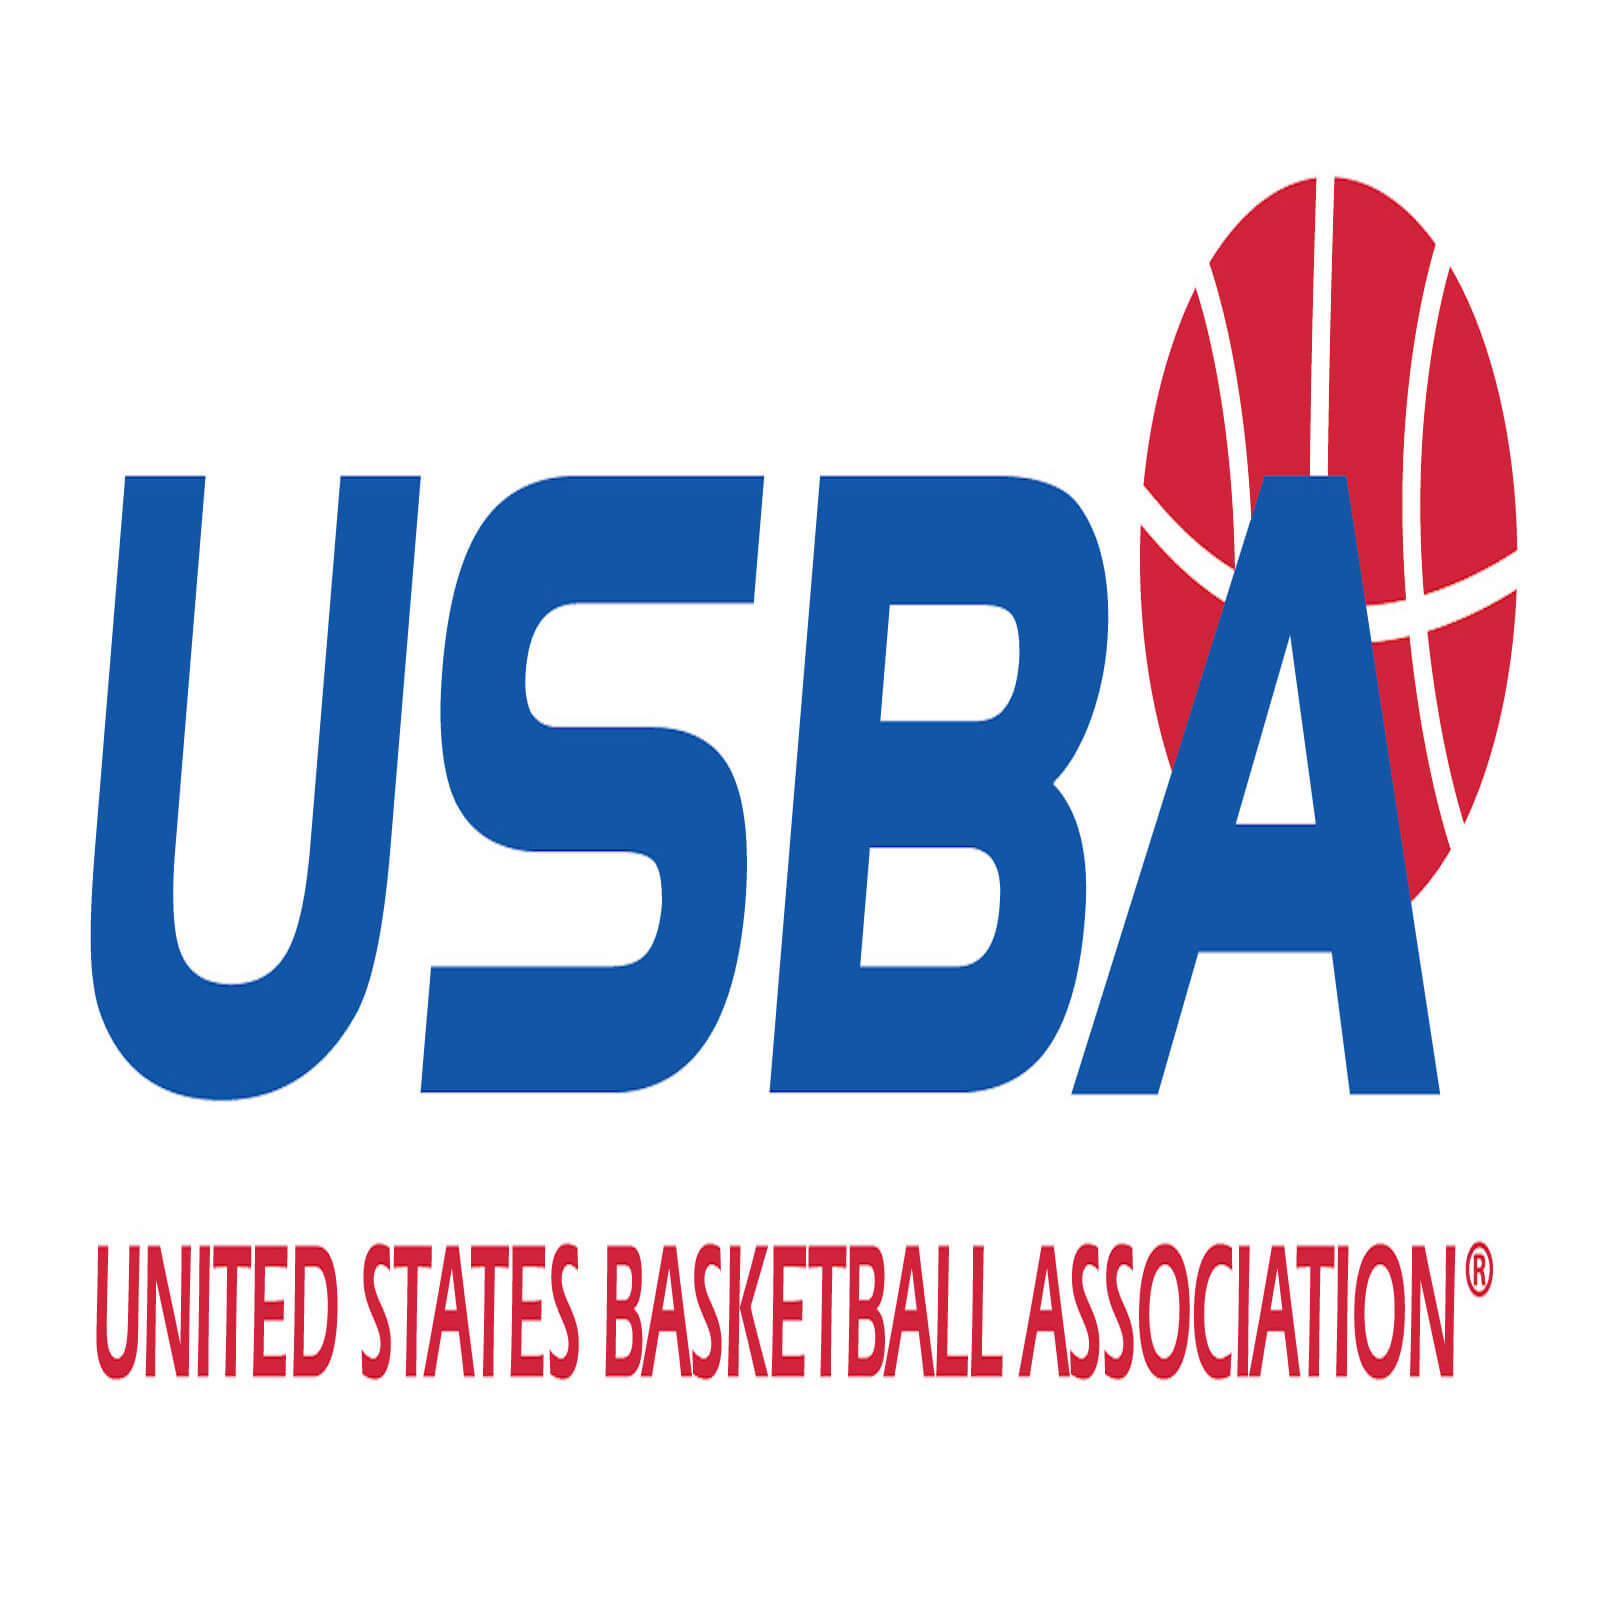 <h2><strong>US Basketball Assocation</strong></h2>